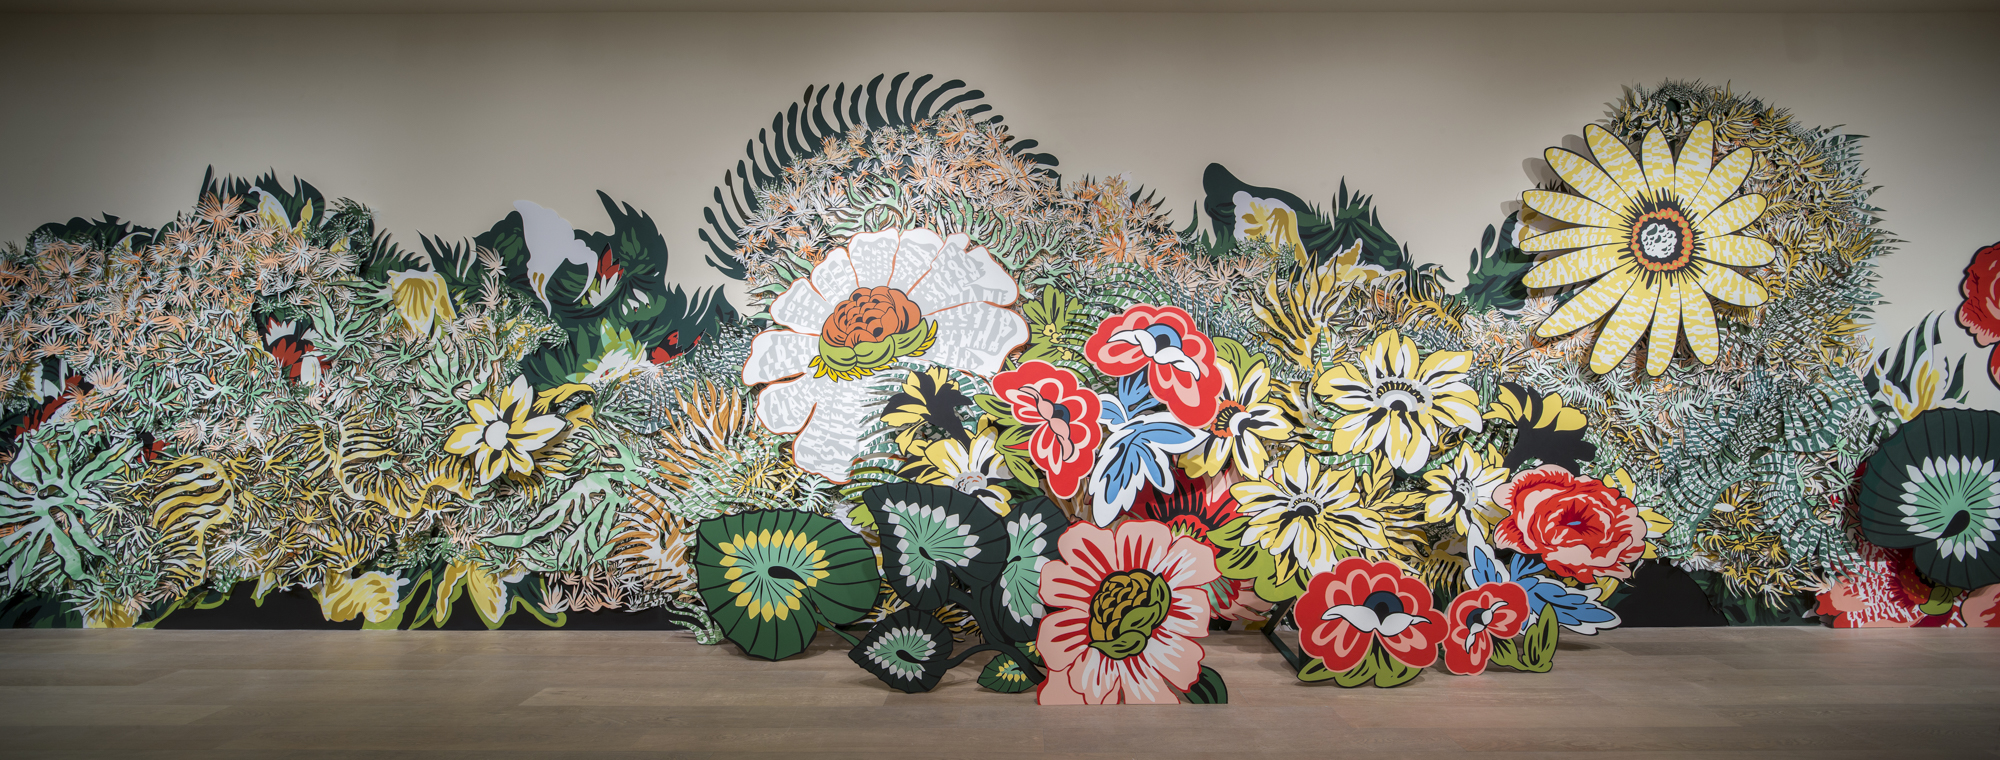 "Natasha Bowdoin, ""Bloom"", 2015  *Experimental Gallery, SCAD MoA. Savannah, GA"